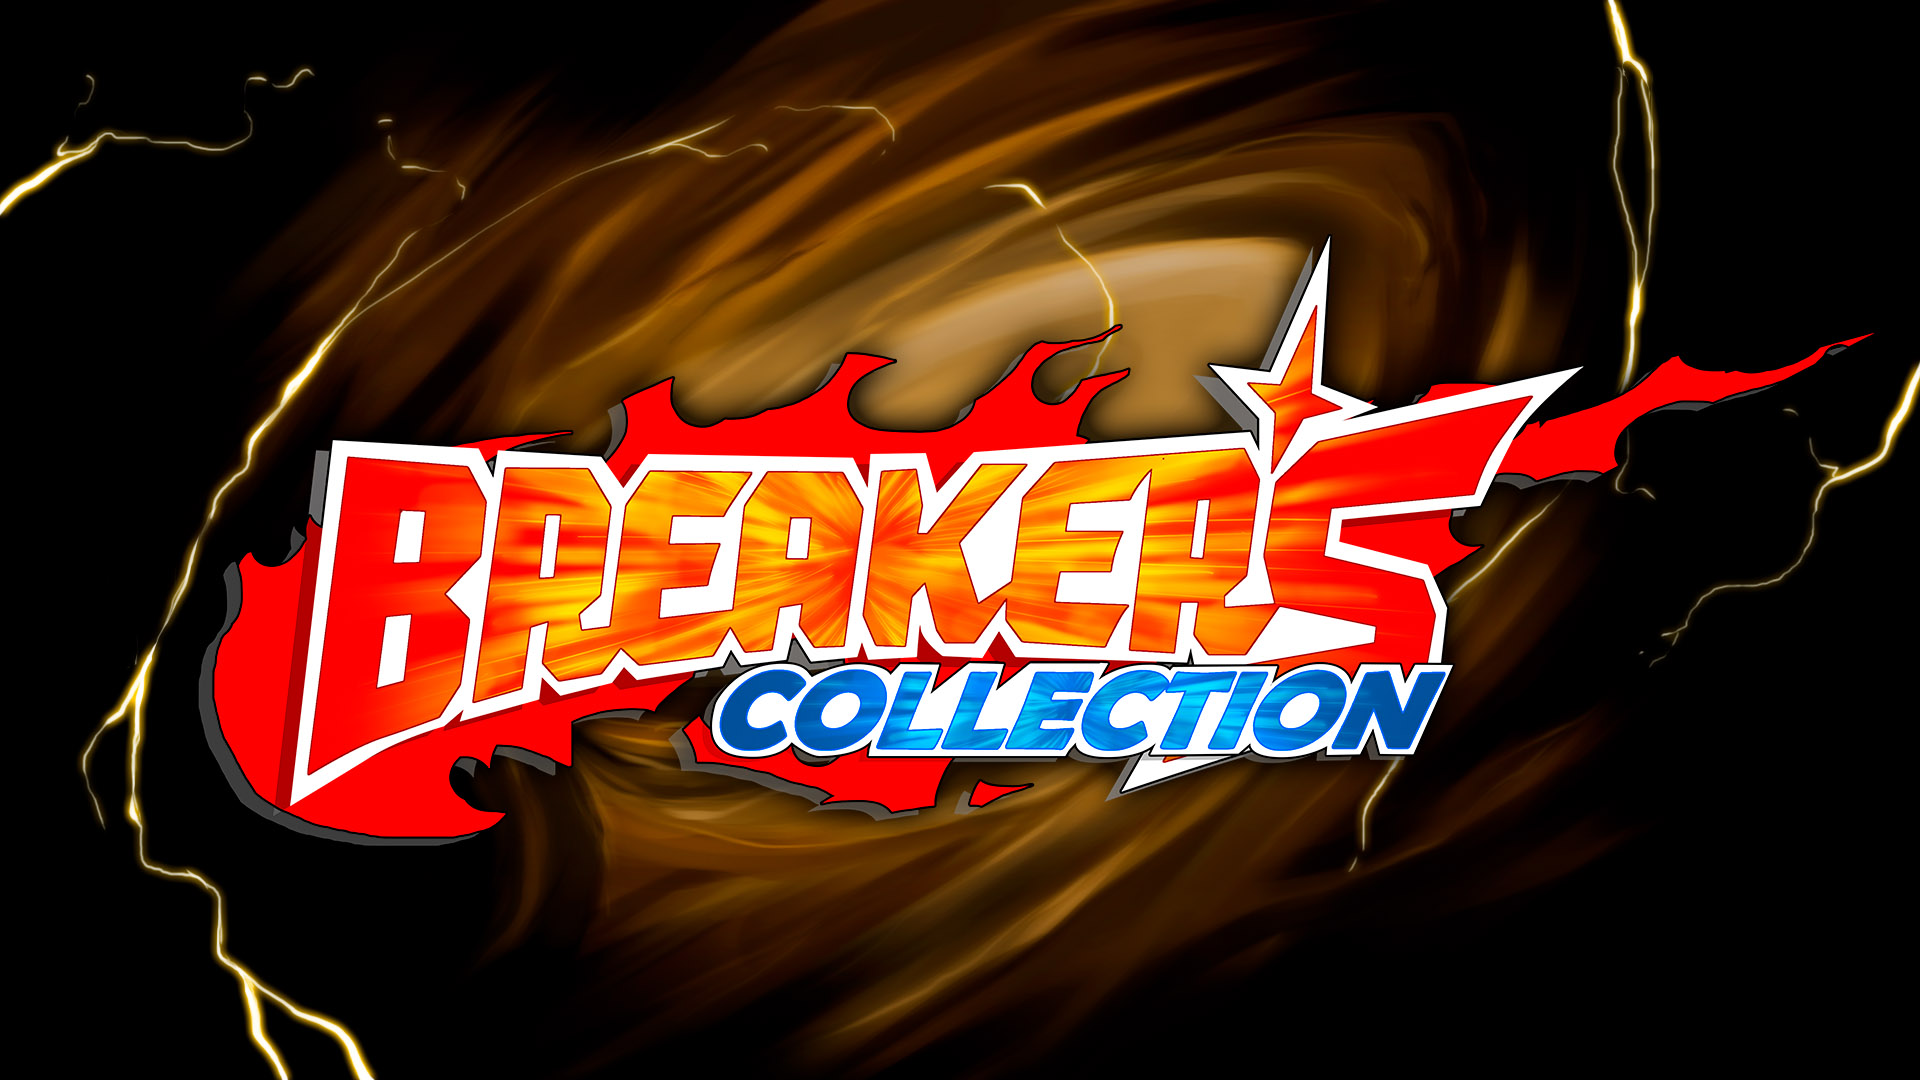 Breakers-Collection_2020_09-29-20_005